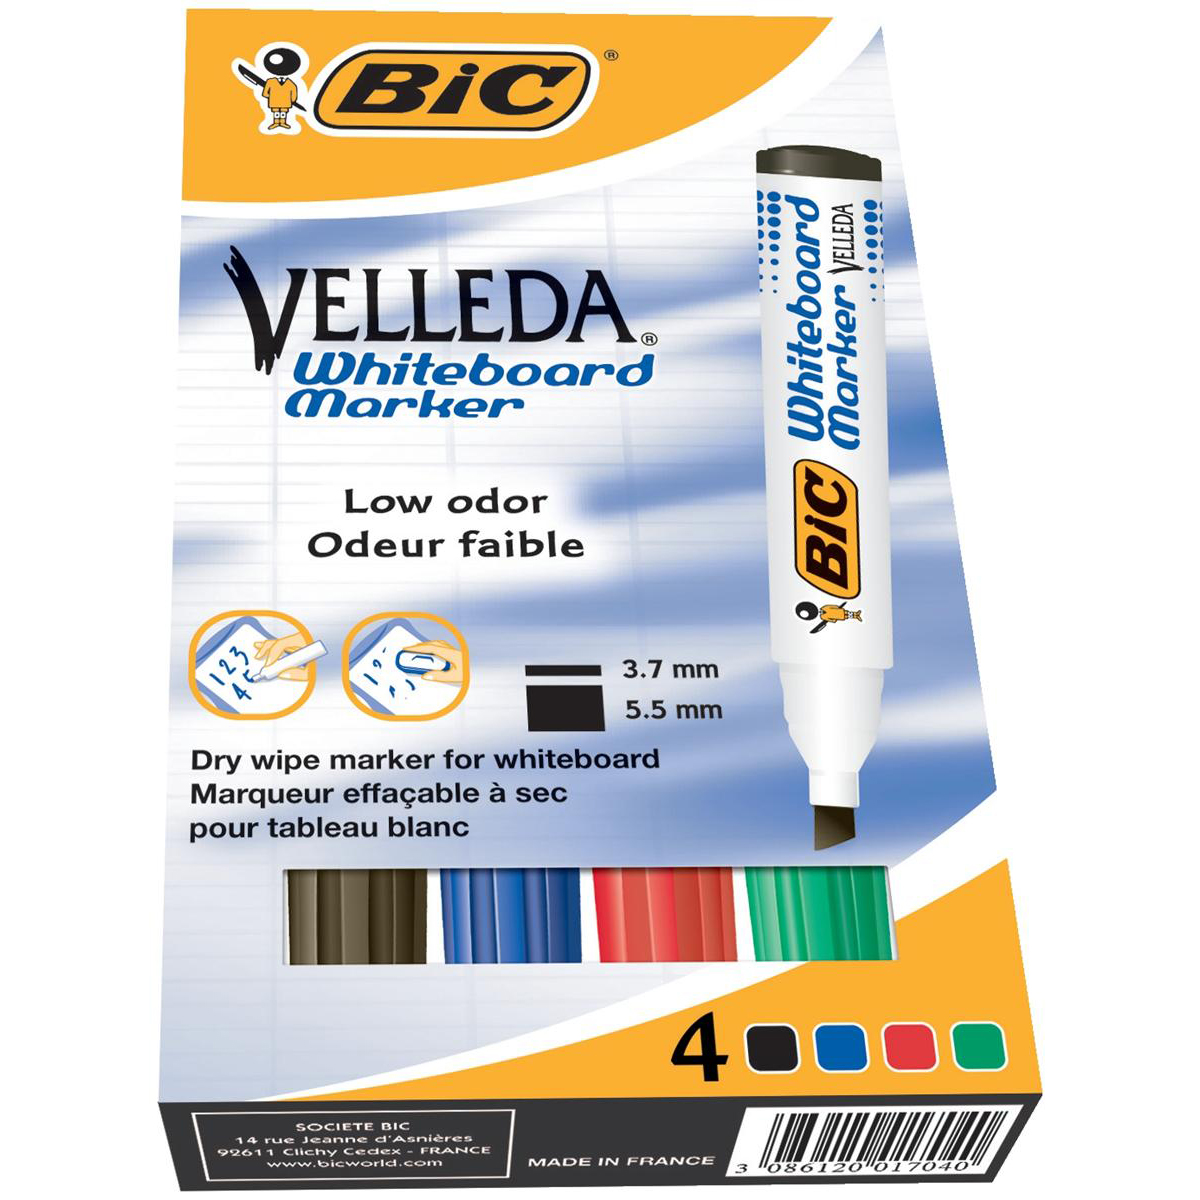 Bic Velleda 1751/1754 Whiteboard Marker Chisel Tip Line Width 3.7-5.5mm Assorted Ref 904950 Pack 4